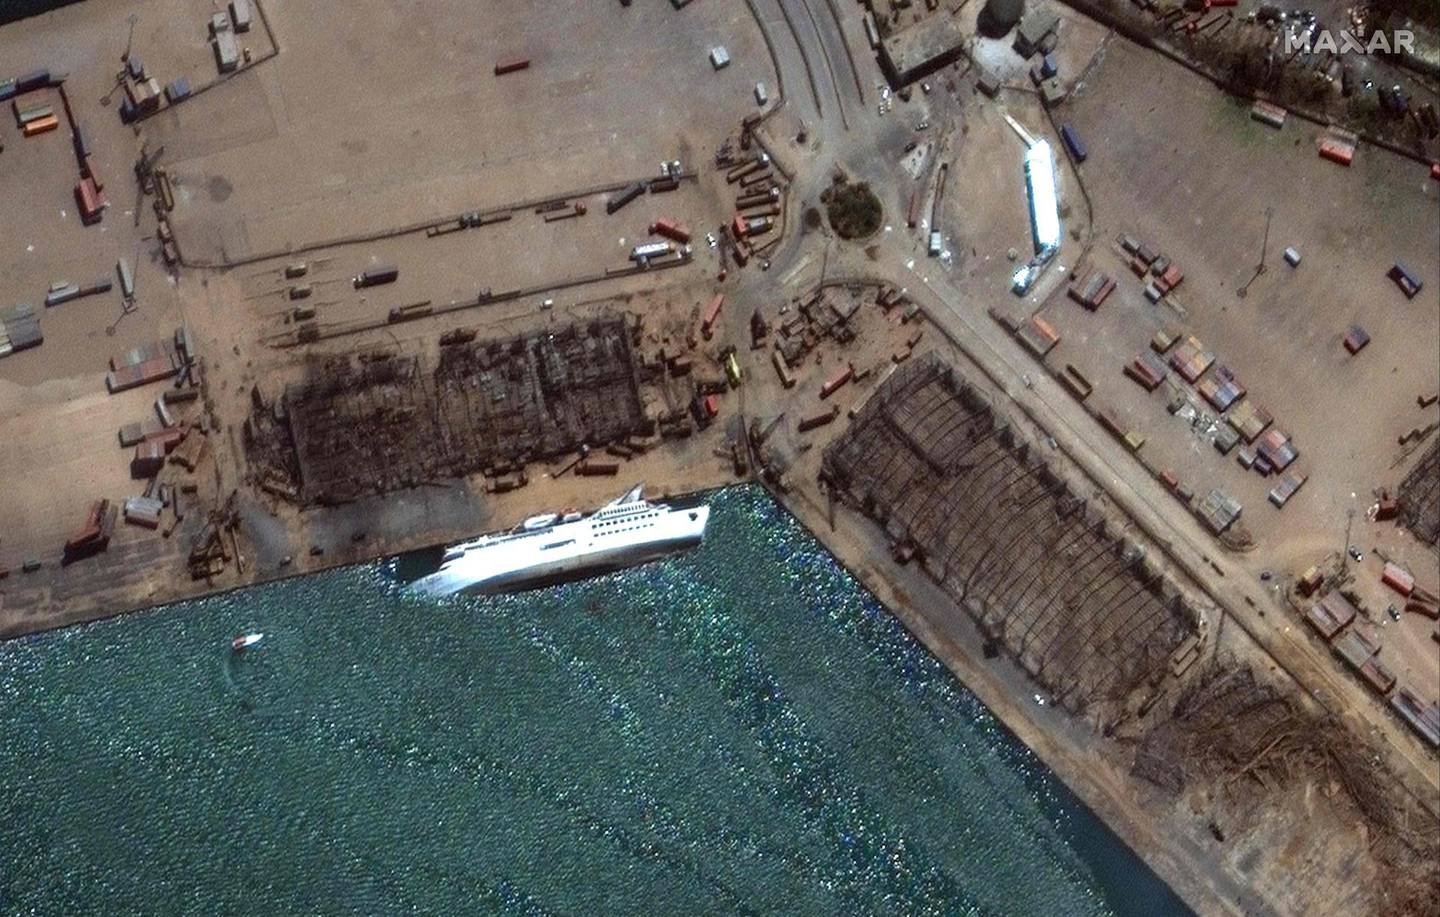 """This August 5, 2020, handout satellite image obtained courtesy of  Maxar Technologies shows the capsized Orient Queen cruise ship after the explosion in Beirut on August 4, 2020. For at least six years, hundreds of tonnes of ammonium nitrate, which Lebanese authorities say caused Tuesday's massive blast, were negligently stored in a Beirut port warehouse, waiting for disaster to strike. The odourless crystalline substance commonly used as a fertiliser has caused numerous industrial explosions over the decades -- including the massive one in Beirut that killed at least 113 people, wounded thousands and left 300,000 homeless - RESTRICTED TO EDITORIAL USE - MANDATORY CREDIT """"AFP PHOTO / Satellite image ©2020 Maxar Technologies """" - NO MARKETING - NO ADVERTISING CAMPAIGNS - DISTRIBUTED AS A SERVICE TO CLIENTS  / AFP / Satellite image ©2020 Maxar Technologies / Handout / RESTRICTED TO EDITORIAL USE - MANDATORY CREDIT """"AFP PHOTO / Satellite image ©2020 Maxar Technologies """" - NO MARKETING - NO ADVERTISING CAMPAIGNS - DISTRIBUTED AS A SERVICE TO CLIENTS"""